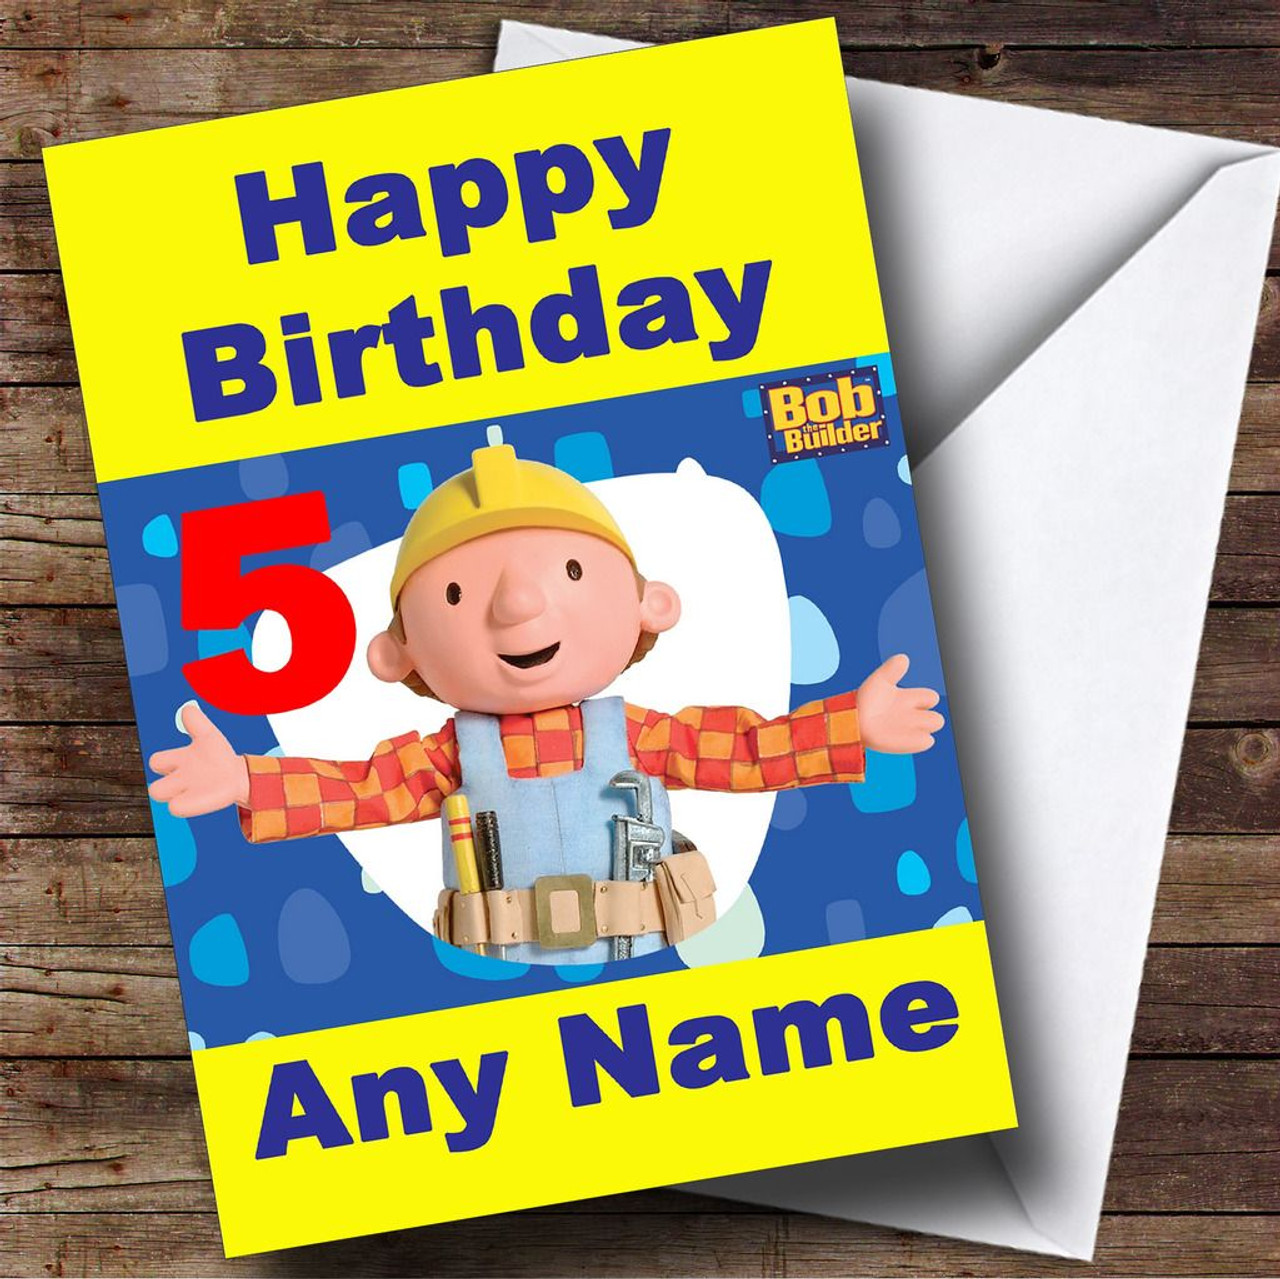 Bob the builder personalised birthday card the card zoo bob the builder personalised birthday card kristyandbryce Images